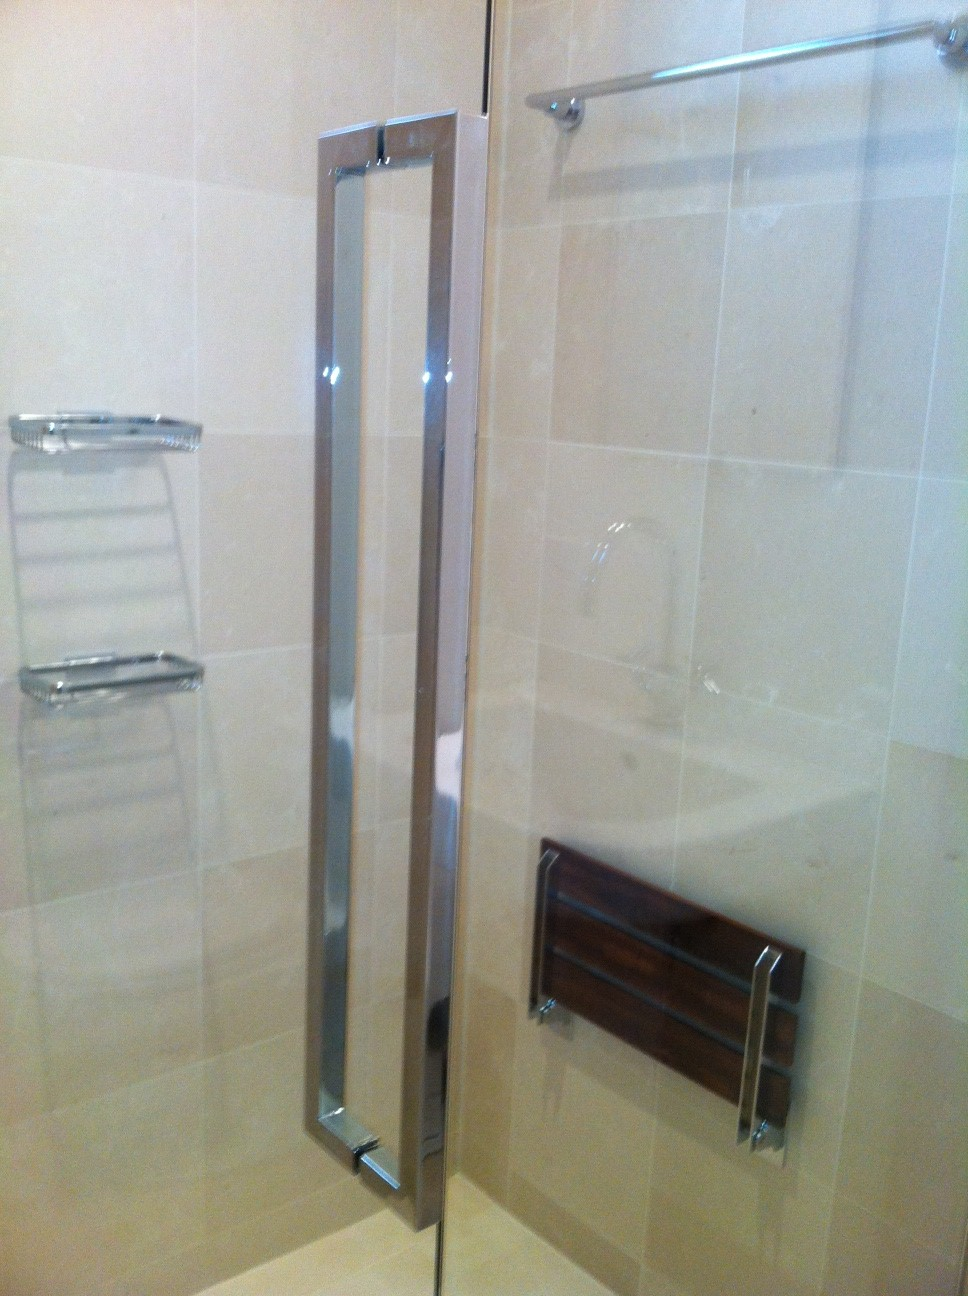 laurence tanner ways glass pictures shower showers photo ideas door hardware rb cr album